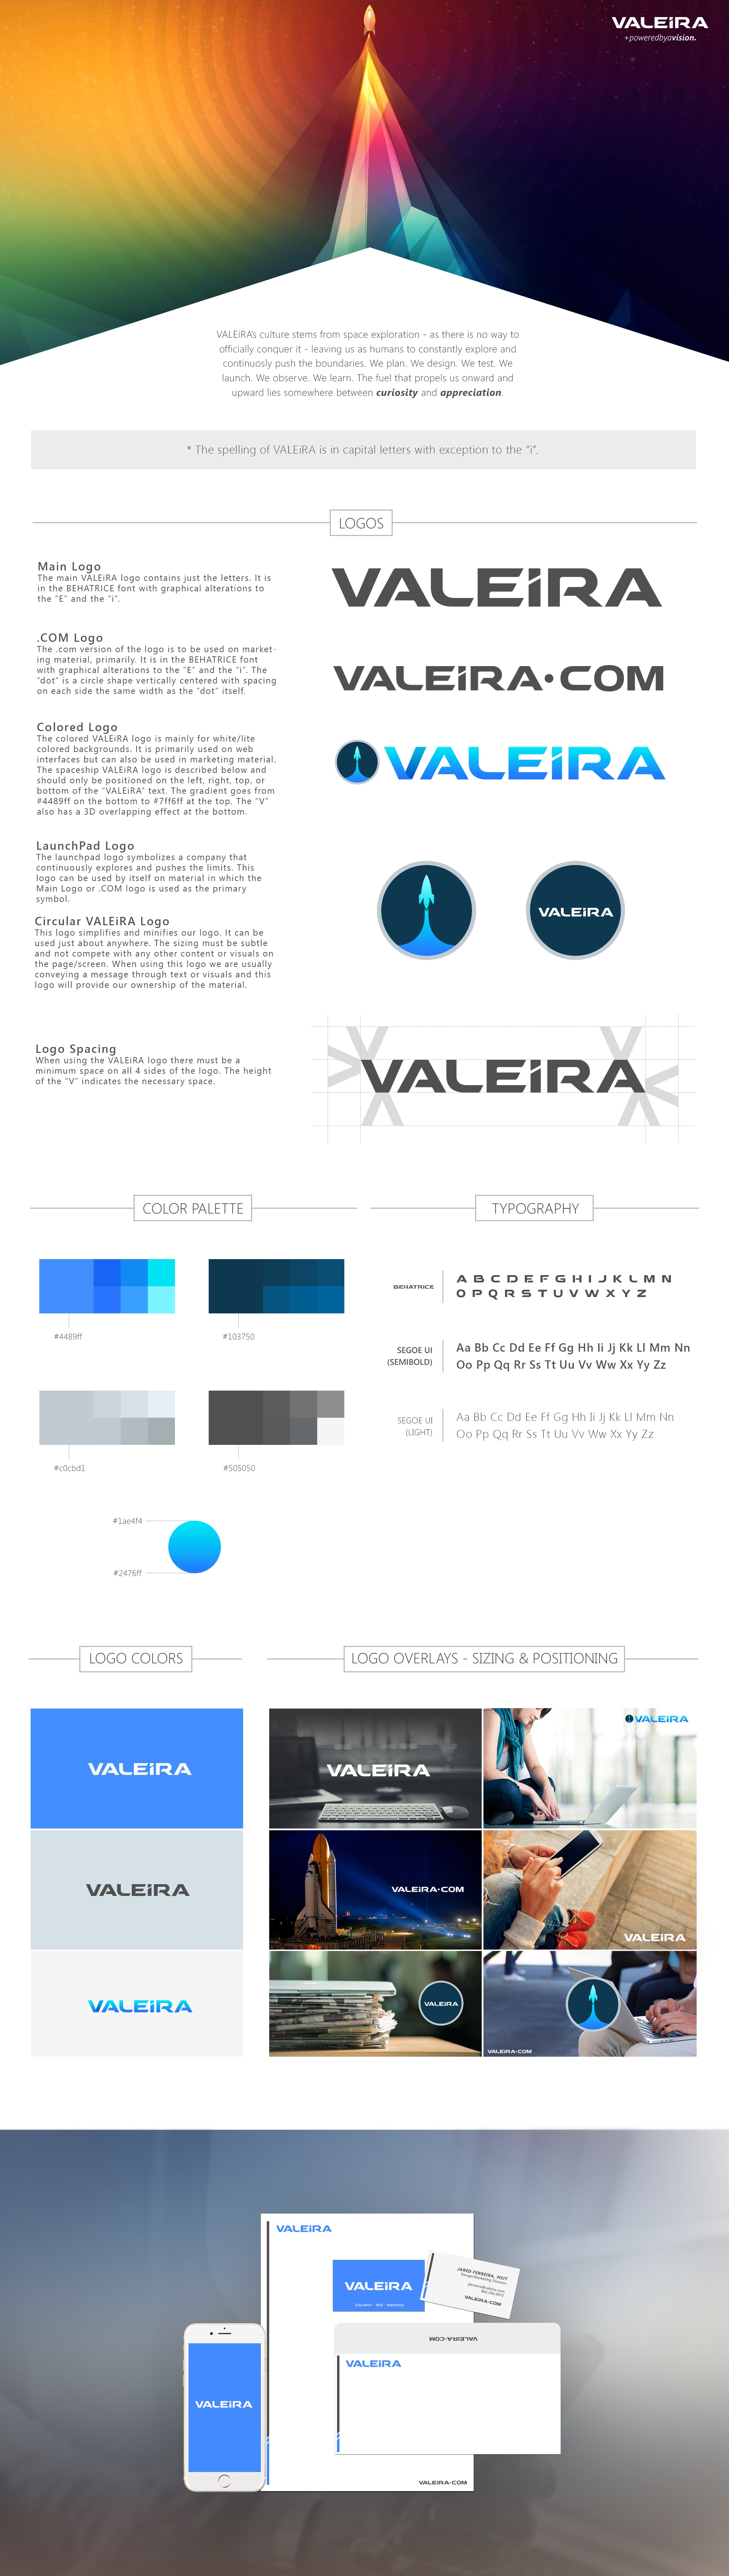 Style Guide Examples - VALEiRA